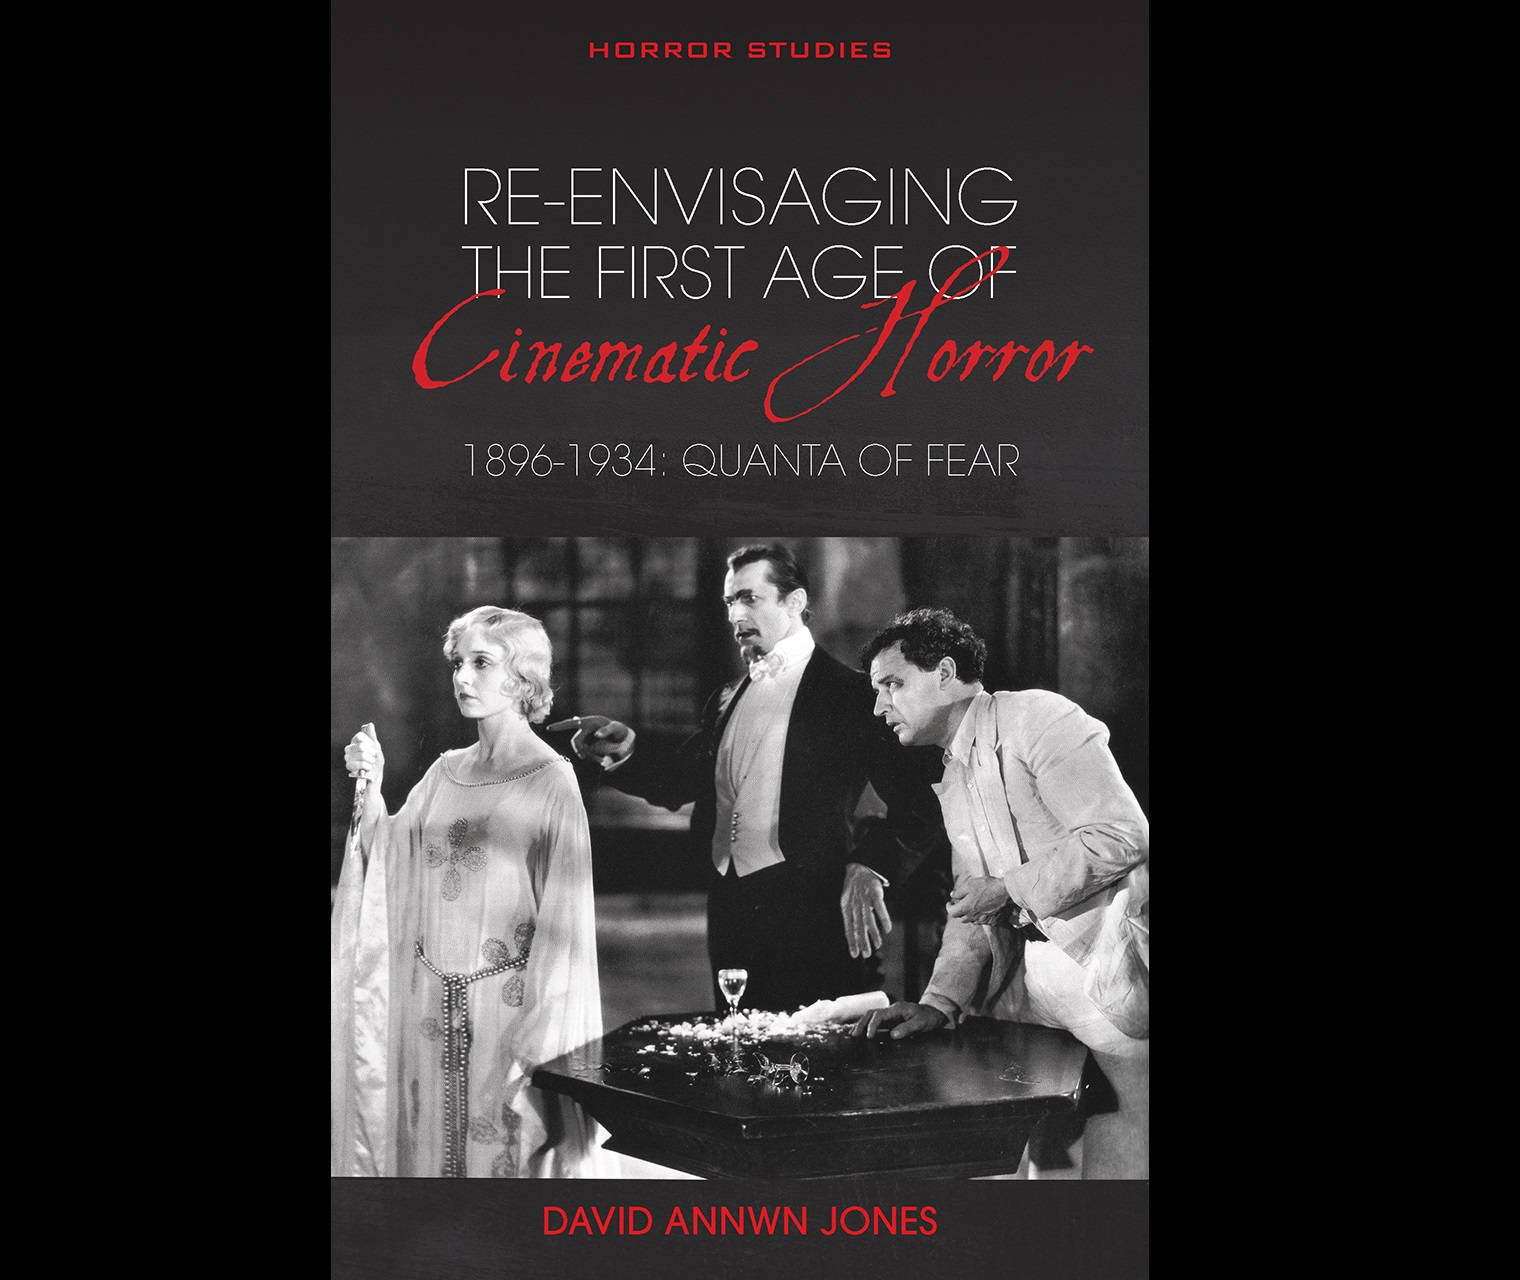 Re-envisaging the First Age of Cinematic Horror, edited by Xavier Aldana Reyes.